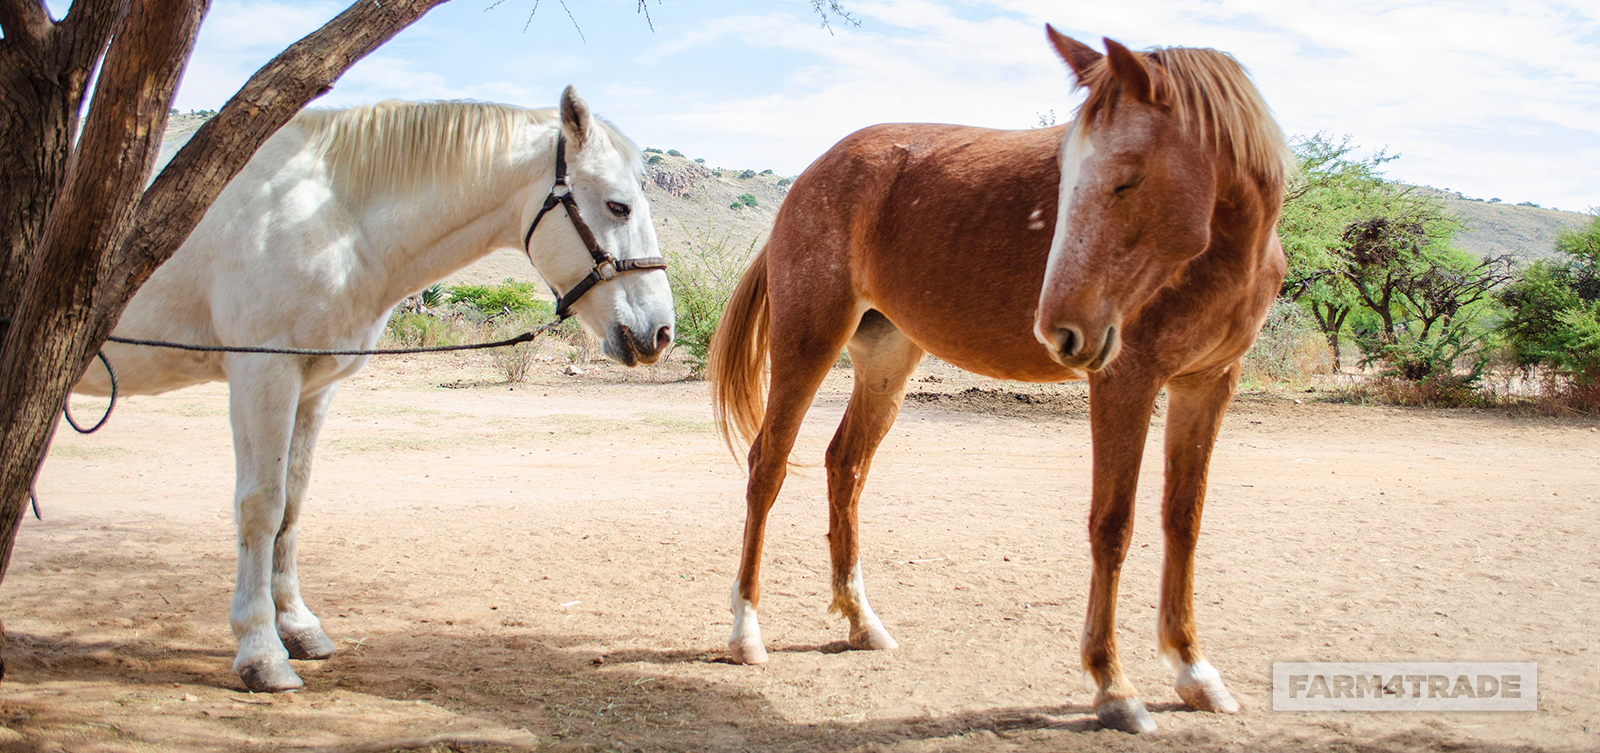 How to manage and avoid anthelmintic resistance in horses - Farm4Trade Blog